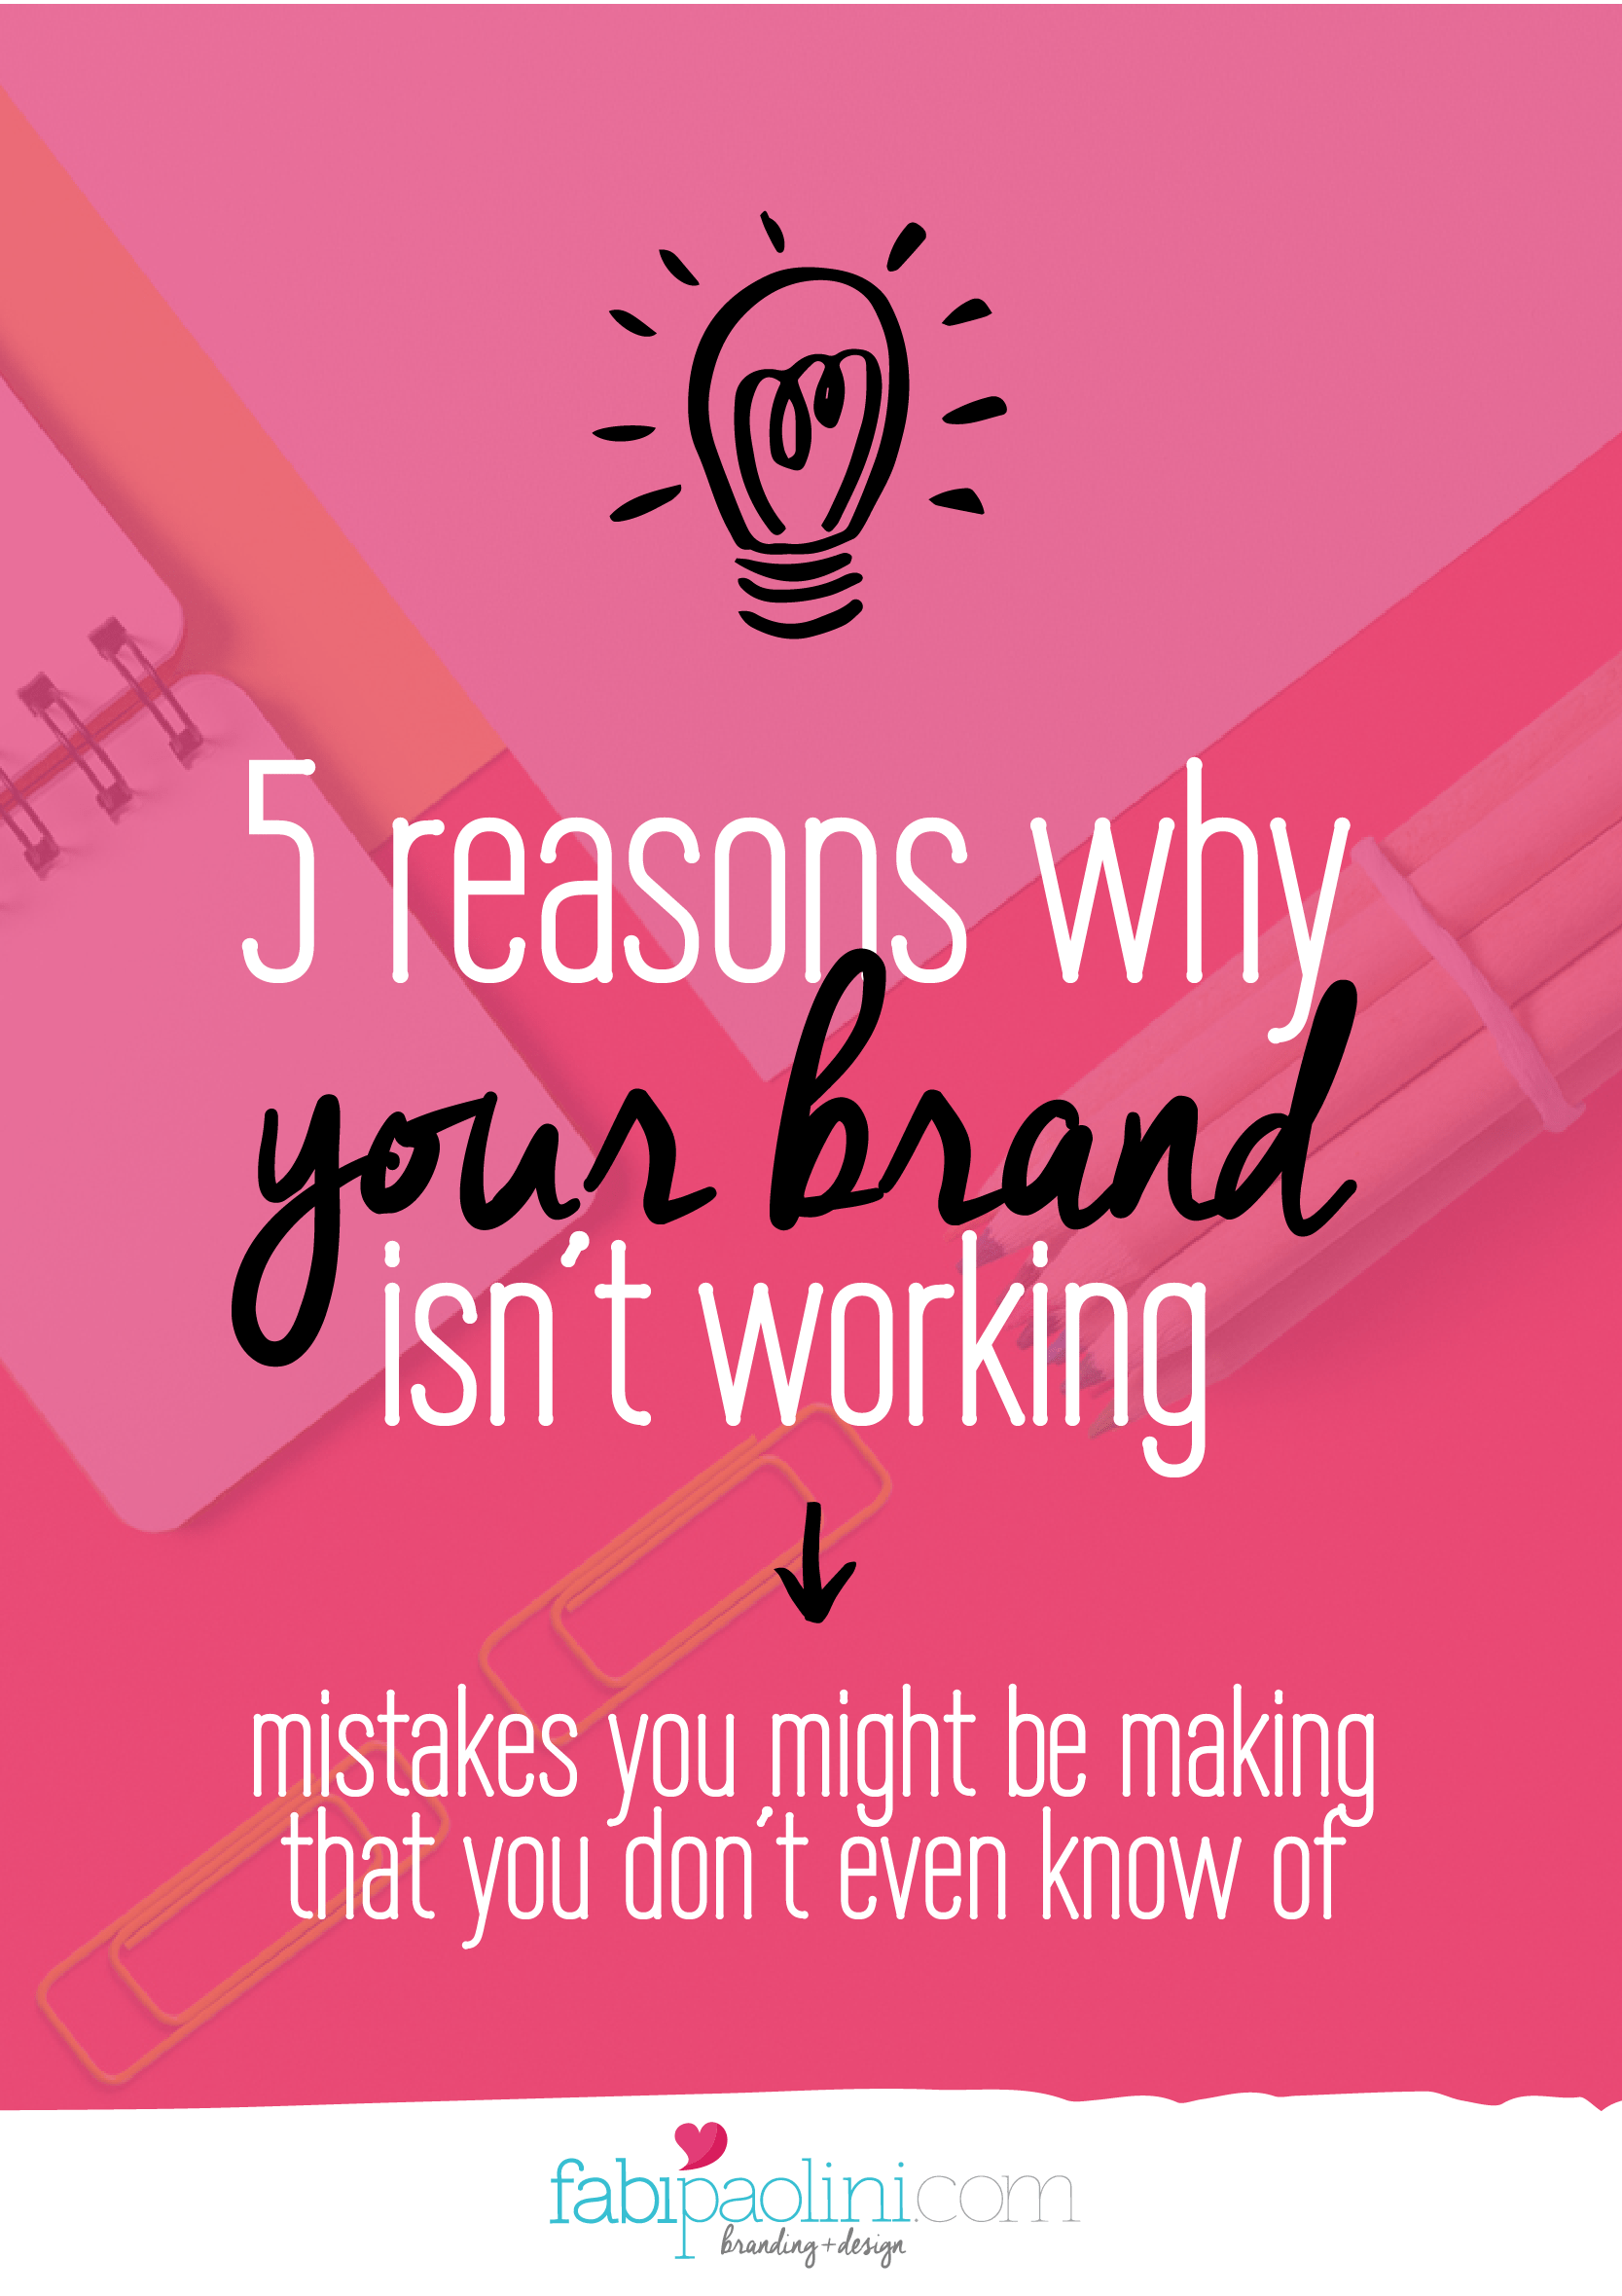 5 reasons your brand isn't working. Mistakes you might be making that are keeping clients away! Read on to find out more!